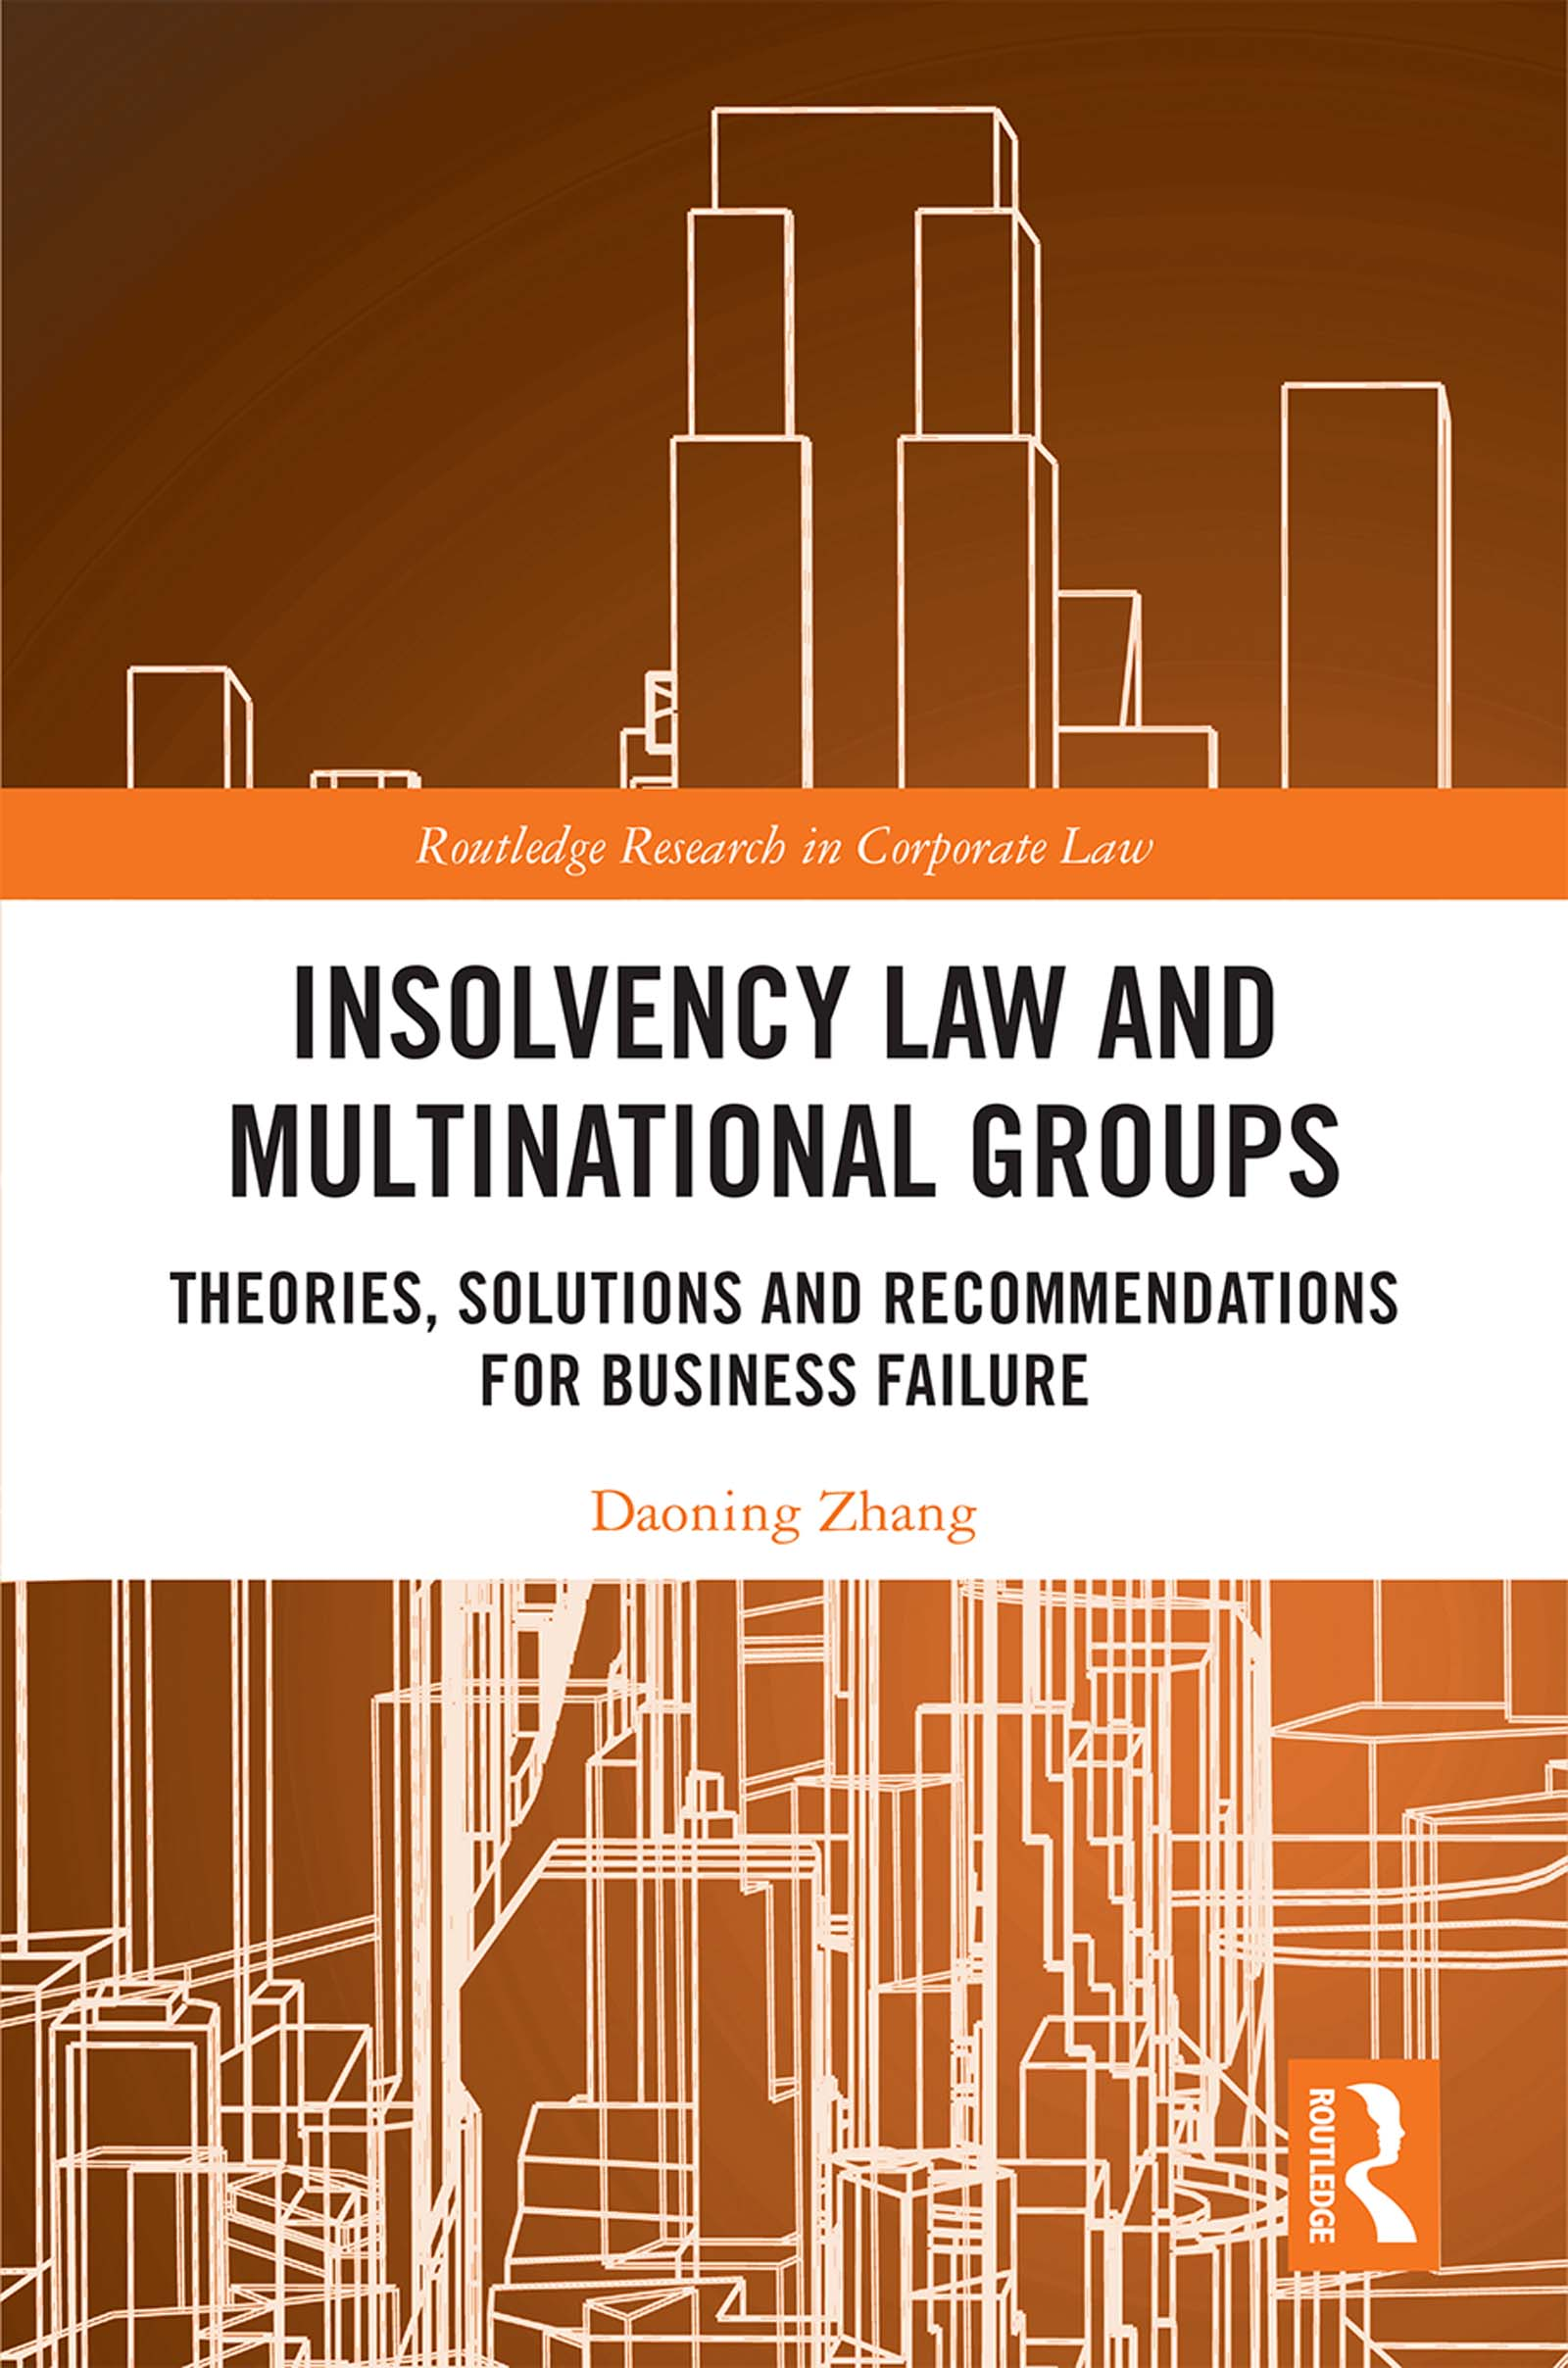 Insolvency Law and Multinational Groups: Theories, Solutions and Recommendations for Business Failure book cover